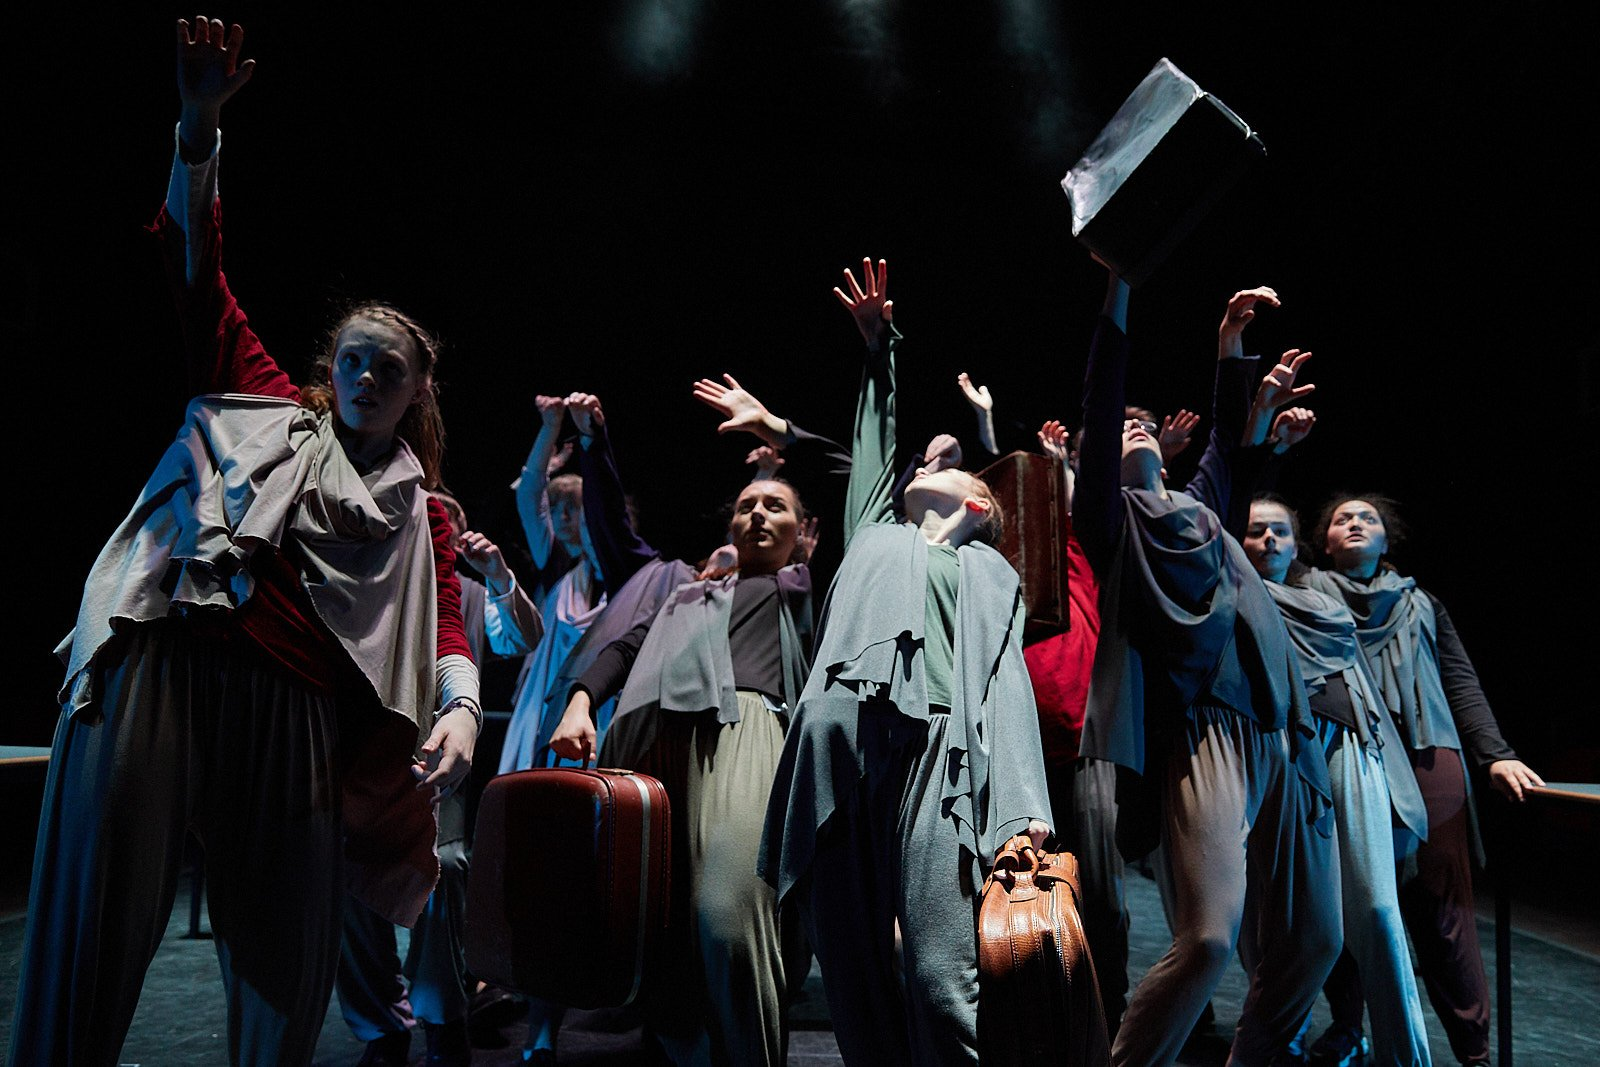 A group of young performers on stage. They are dressed in loose-fitting clothing that is blue, grey and red, and throwing their hands up into the air.